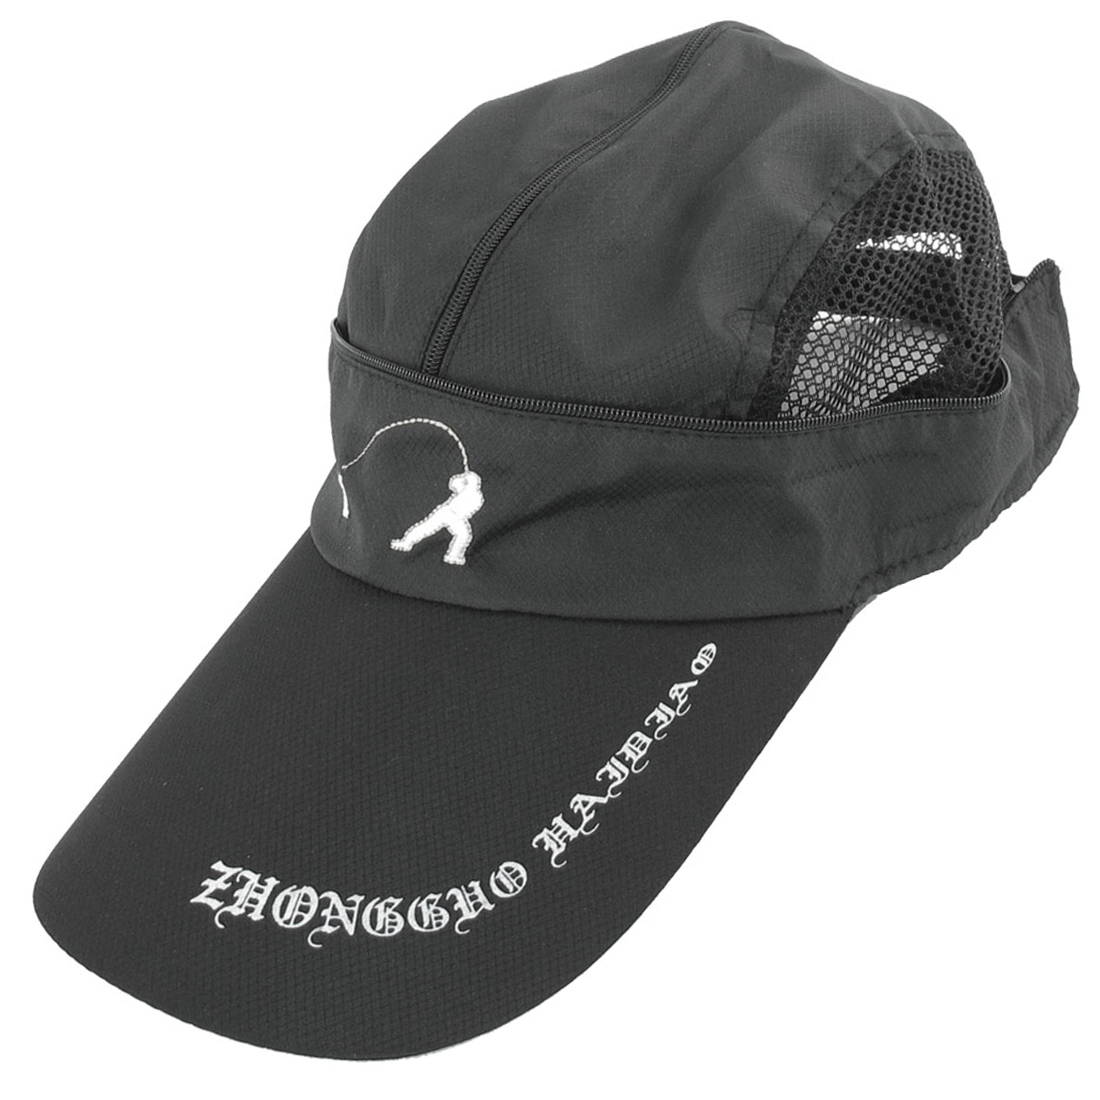 Outdoors Sports Adjustabe Black Polyester Baseball Cap for Men Women